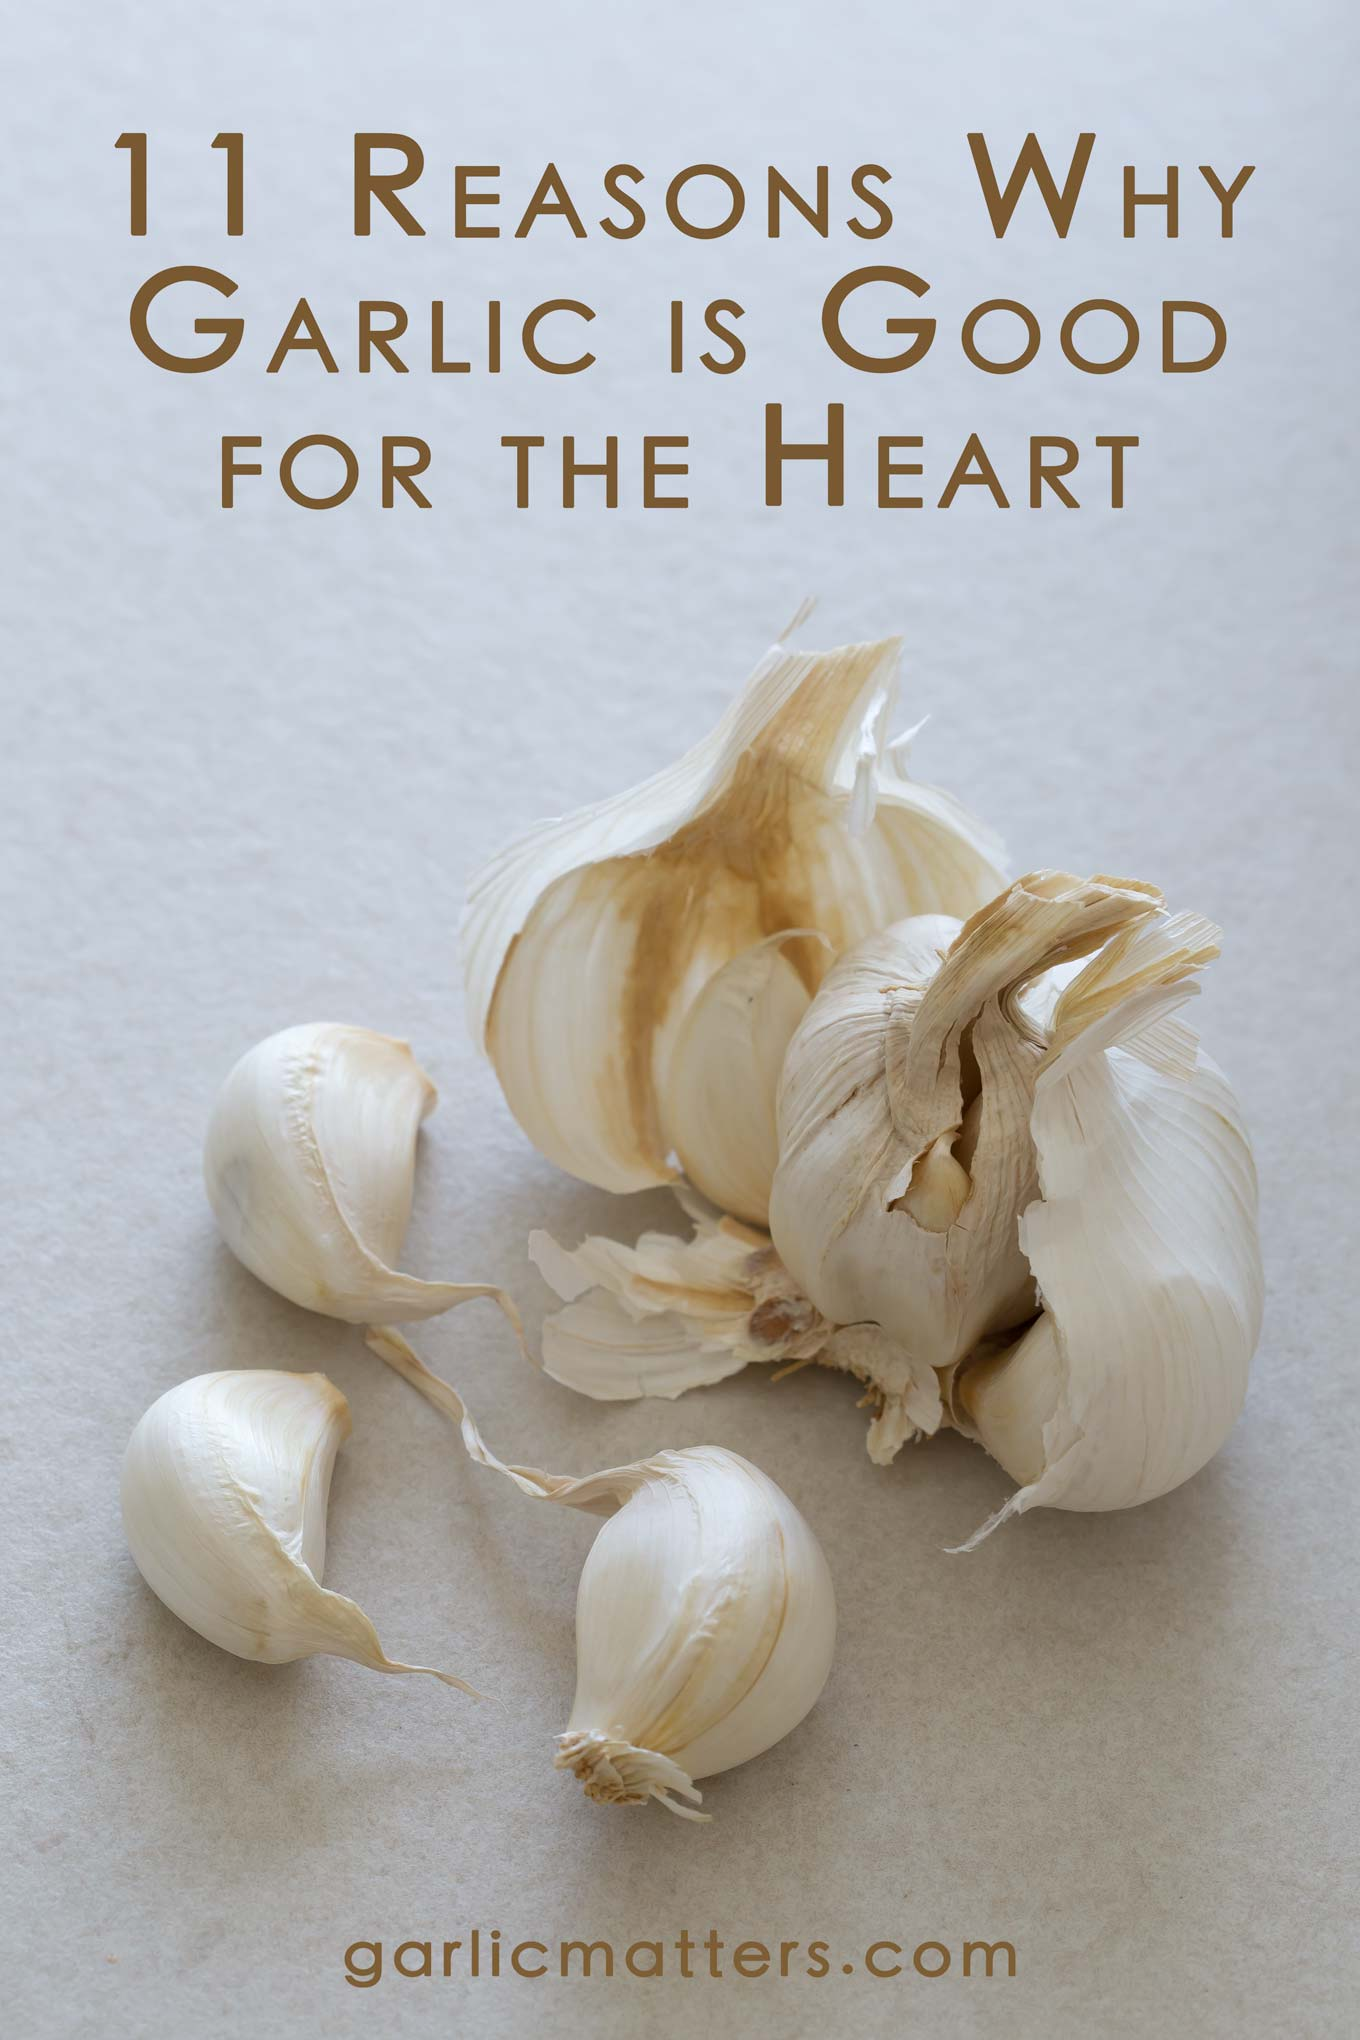 11 Reasons Why Garlic is Good for the Heart